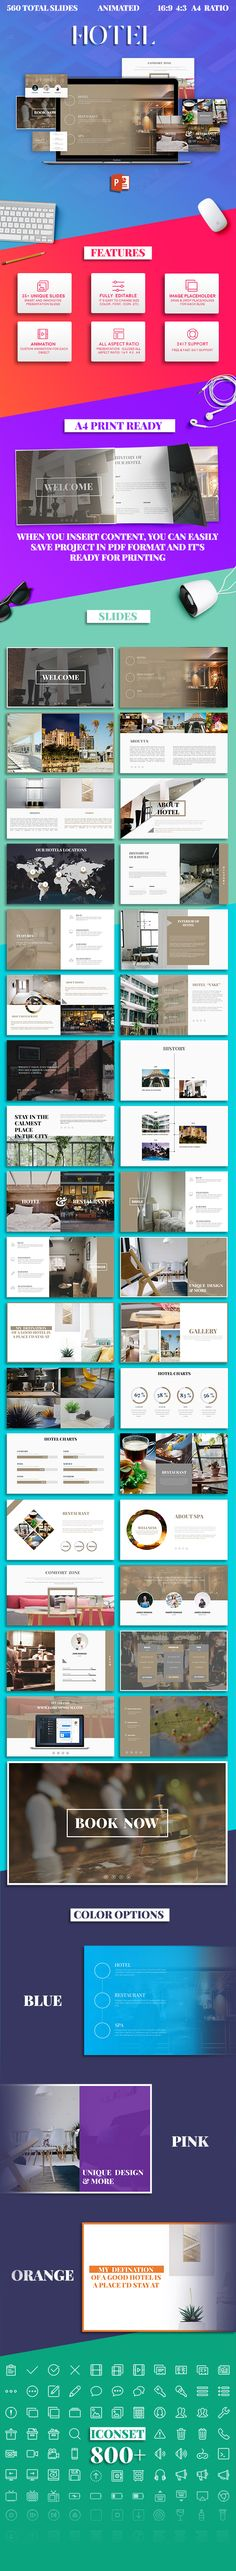 Premium Powerpoint Presentation with an awesome features and etc...